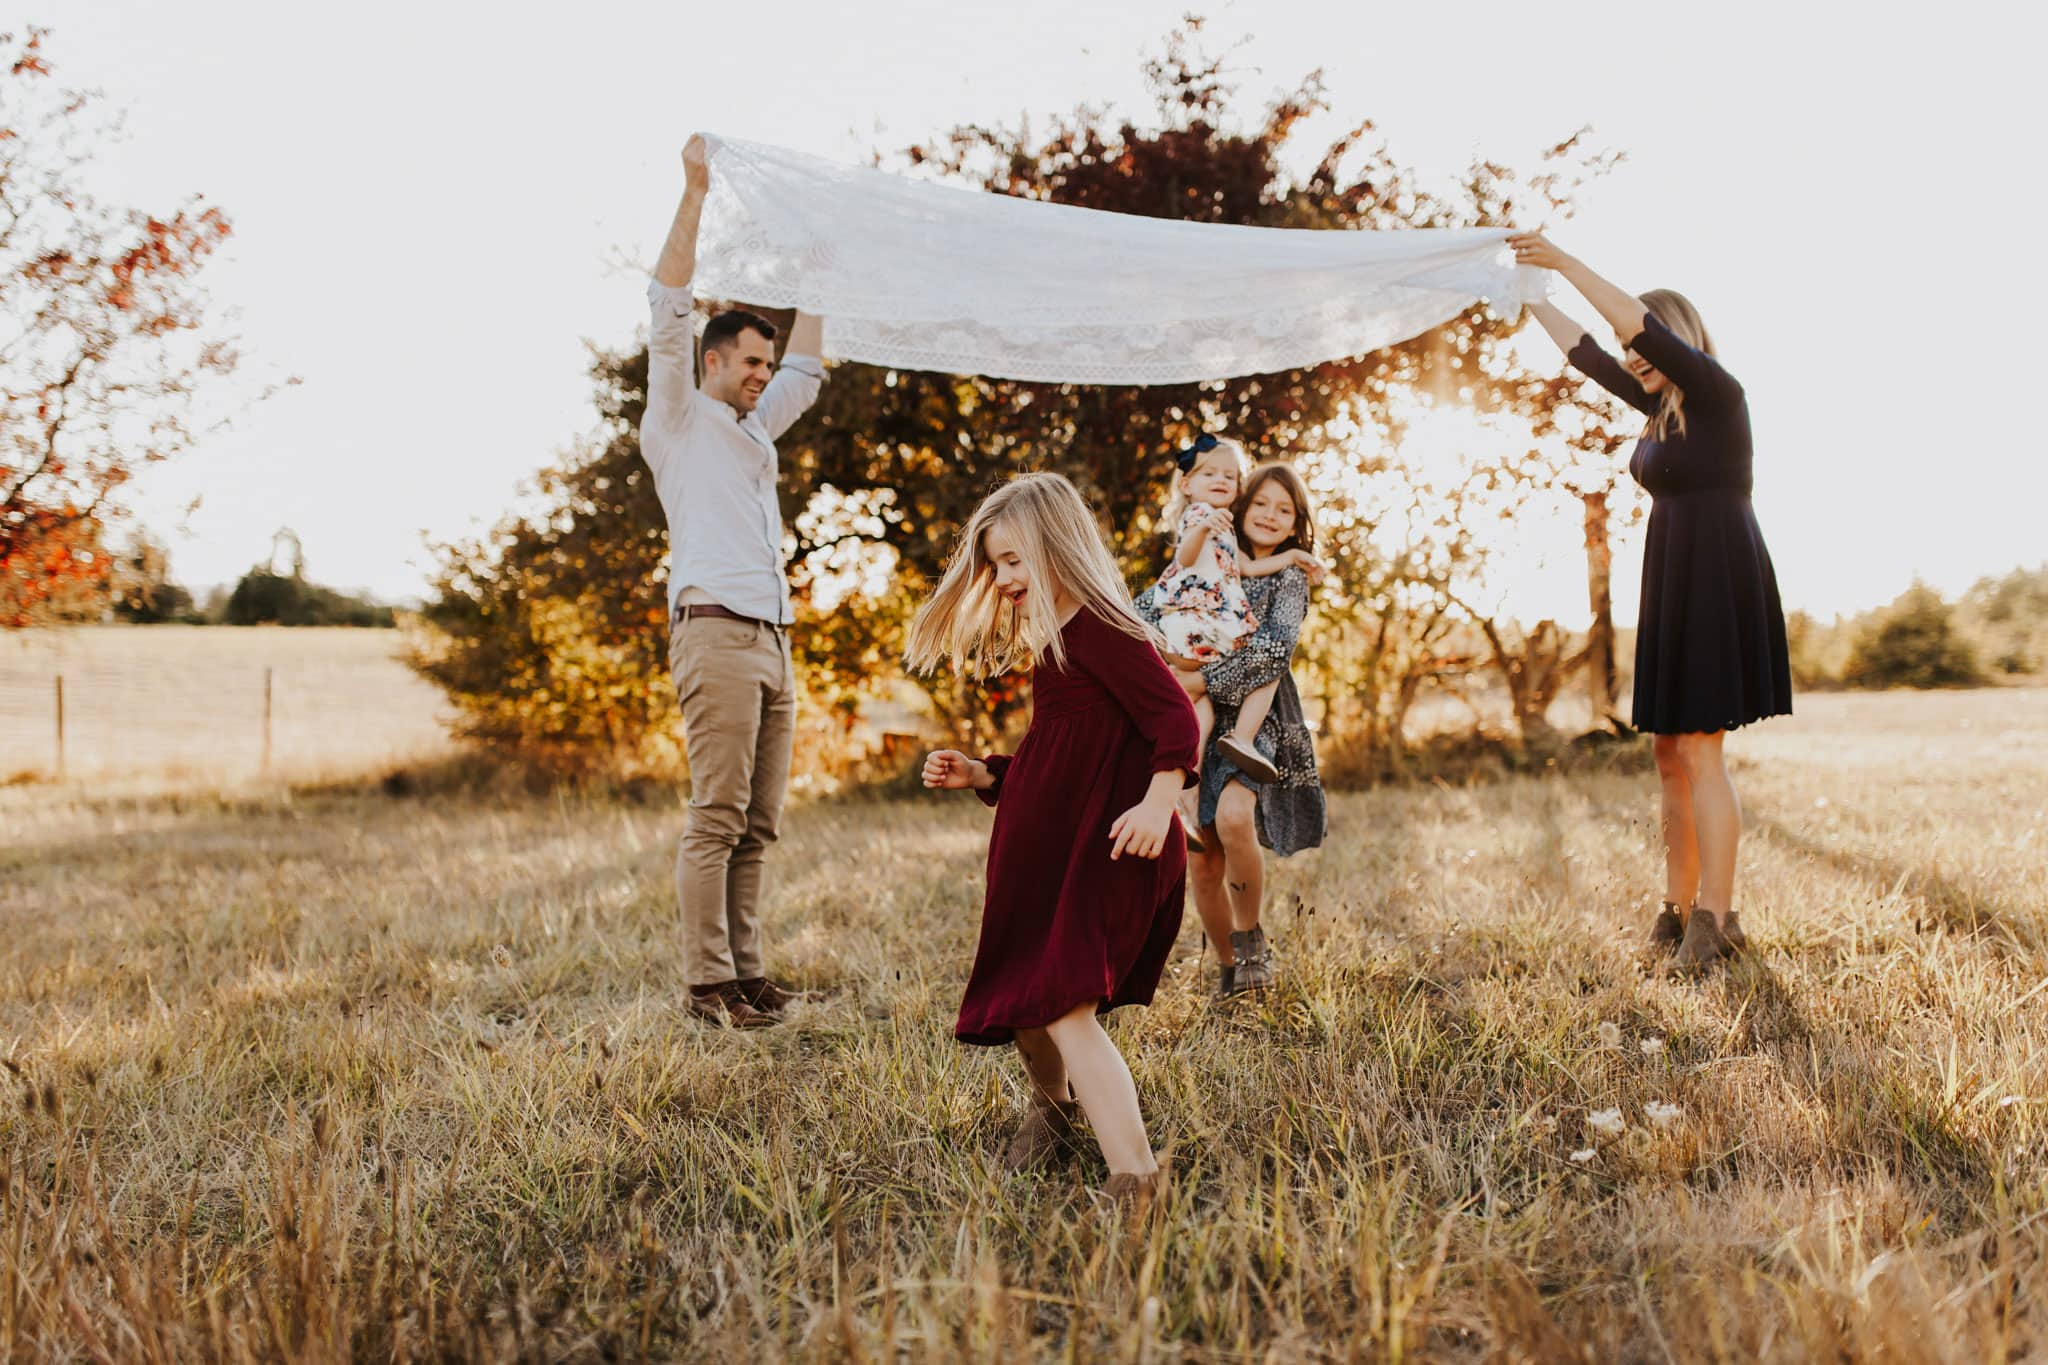 Kids running under blanket during photo session with family